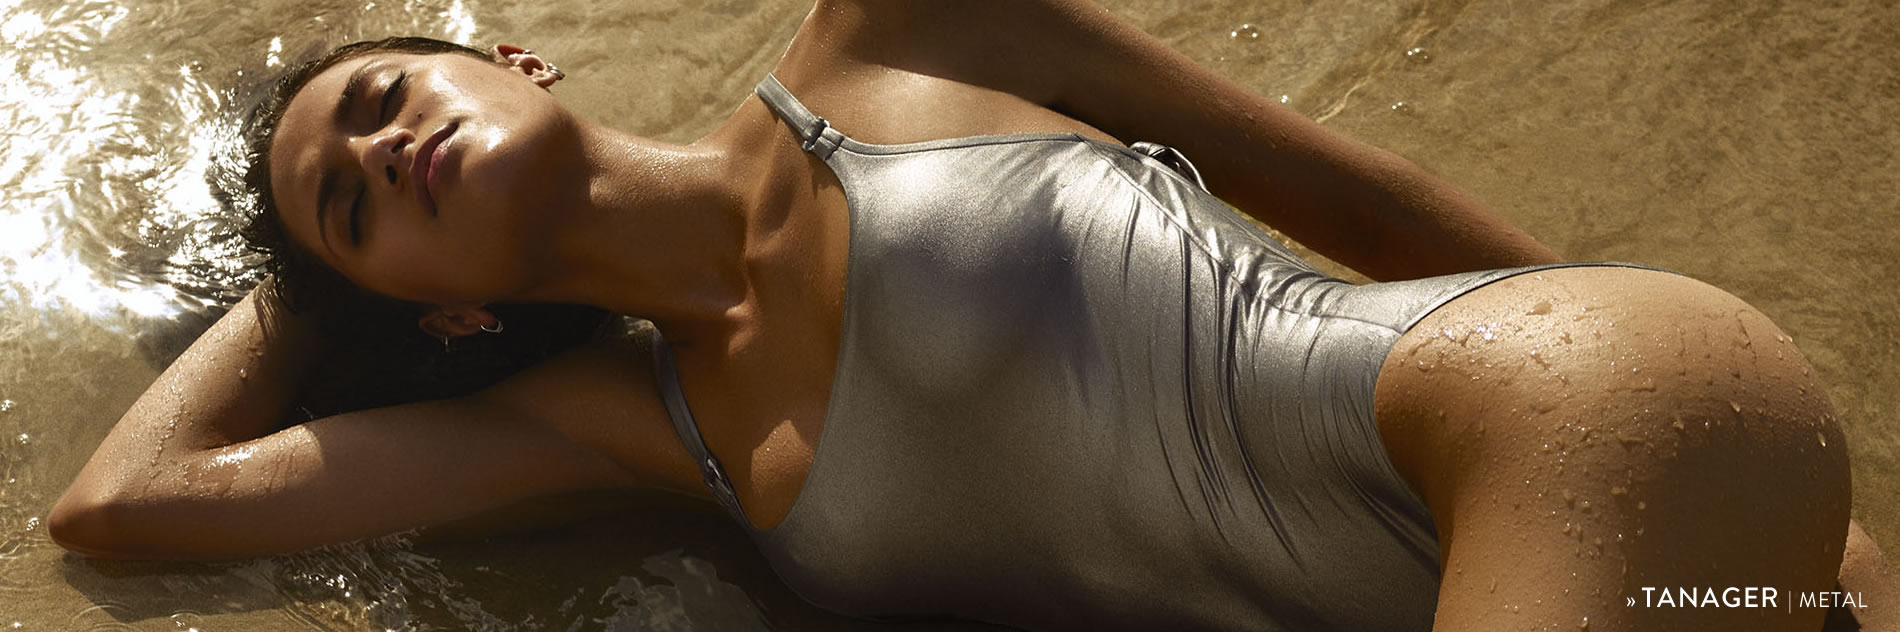 Andres Sarda Swimwear Tanager metallic